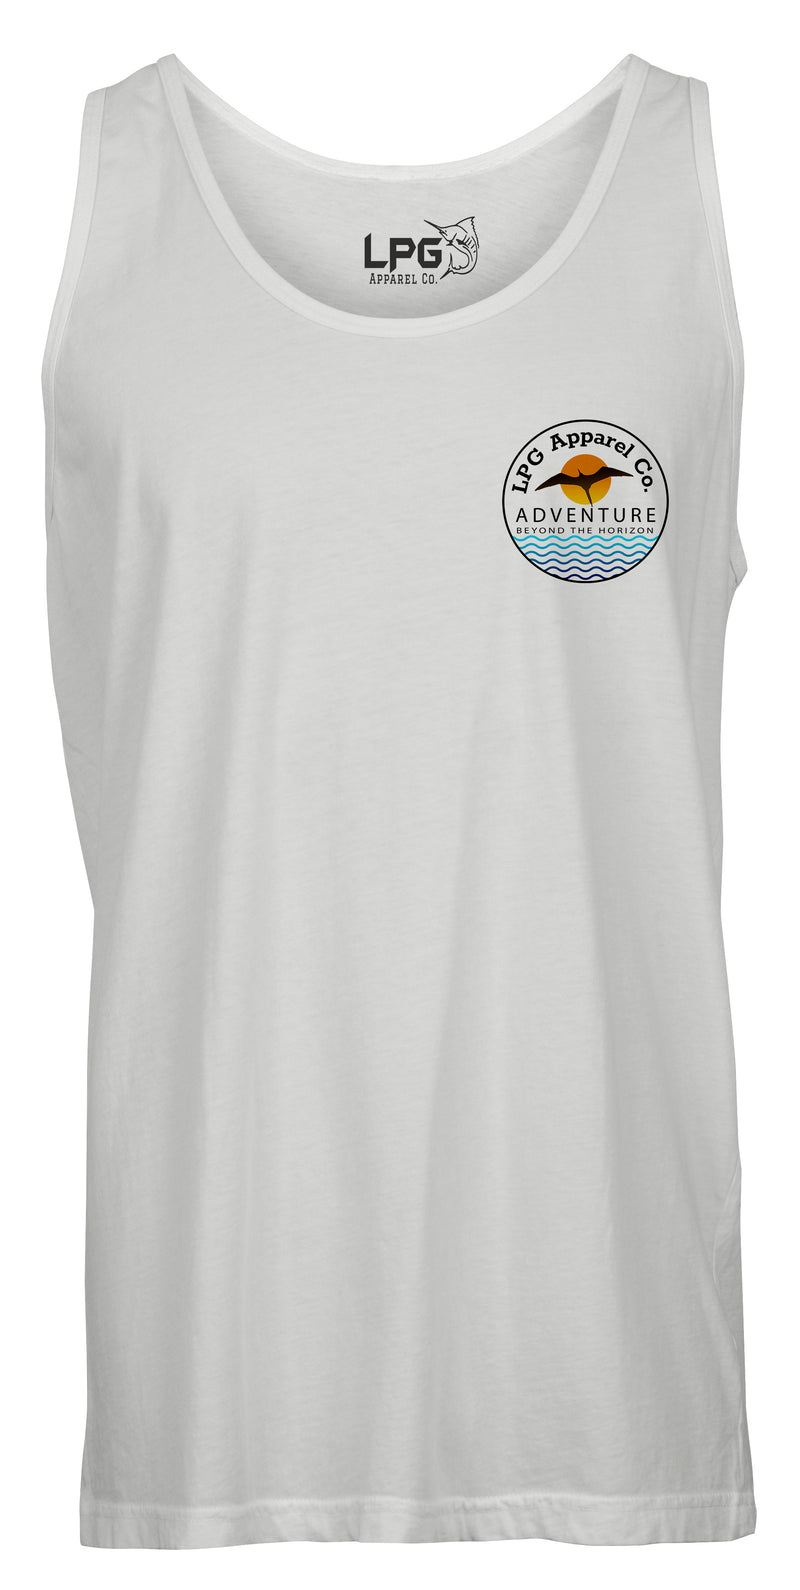 LPG Apparel Co. Frigate Adventure Unisex Tank Top